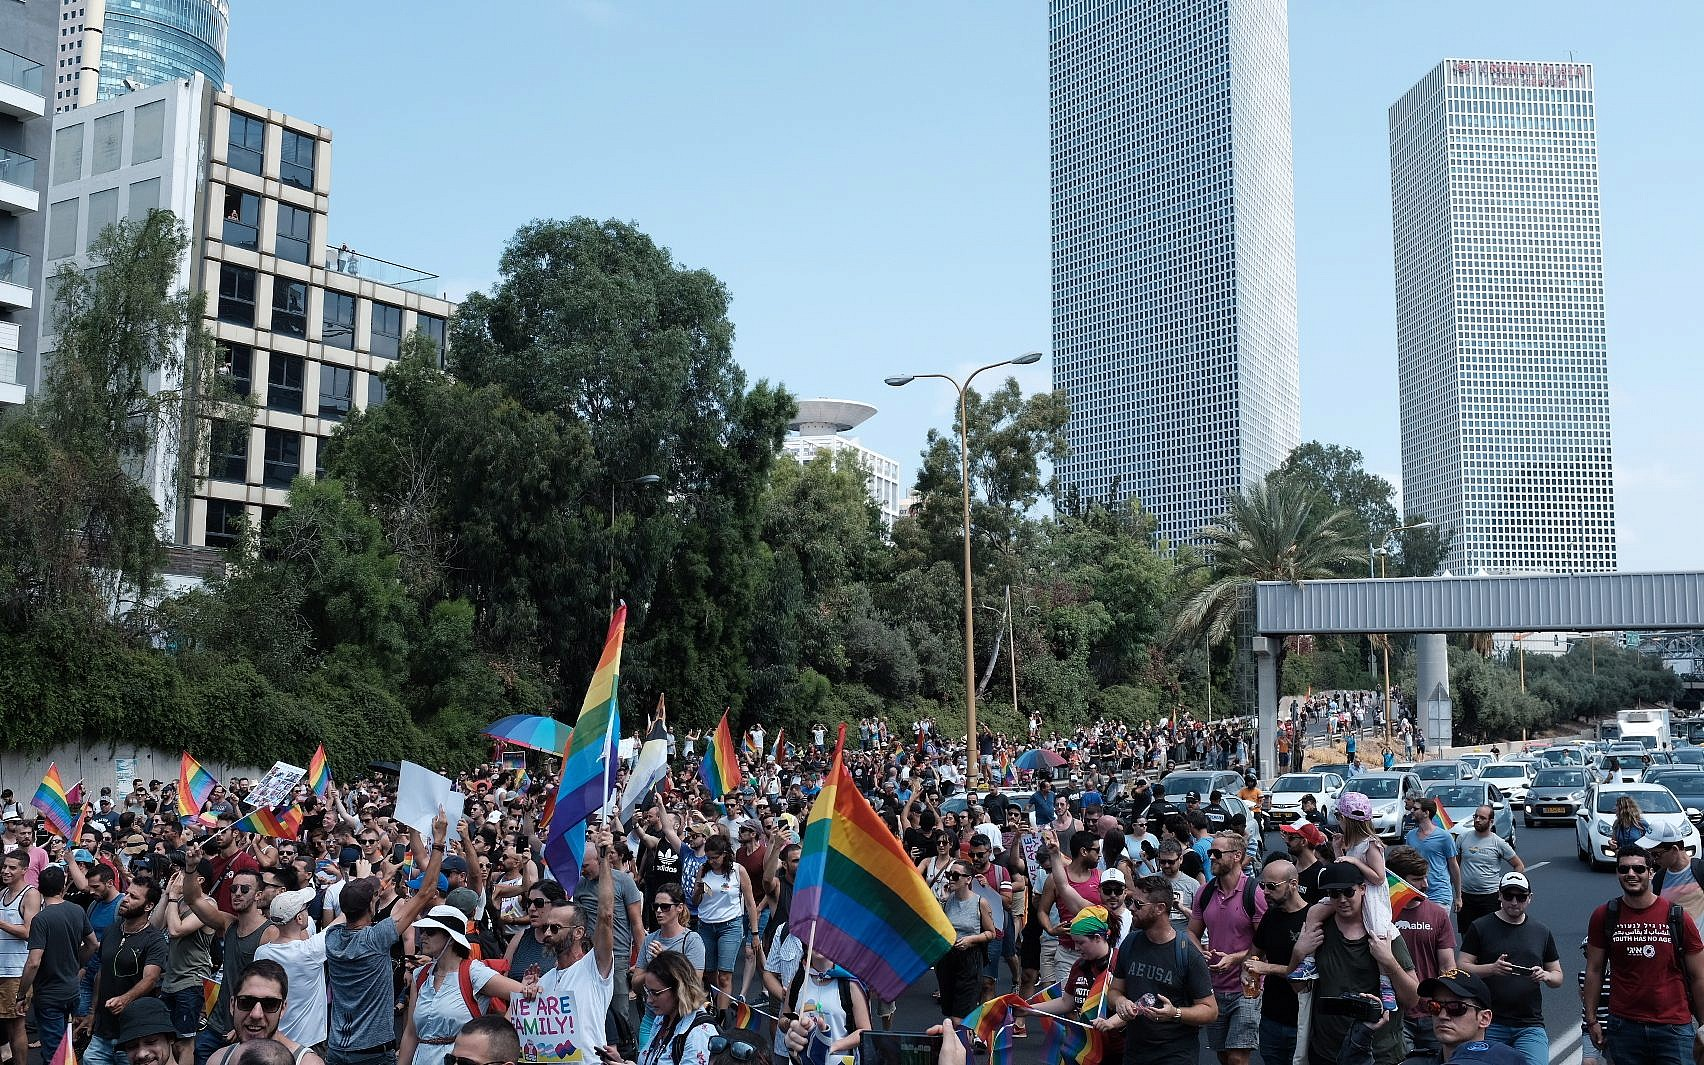 Israeli 'LGBT Strike' Begins As Protesters Block Highway To Blast Surrogacy Law